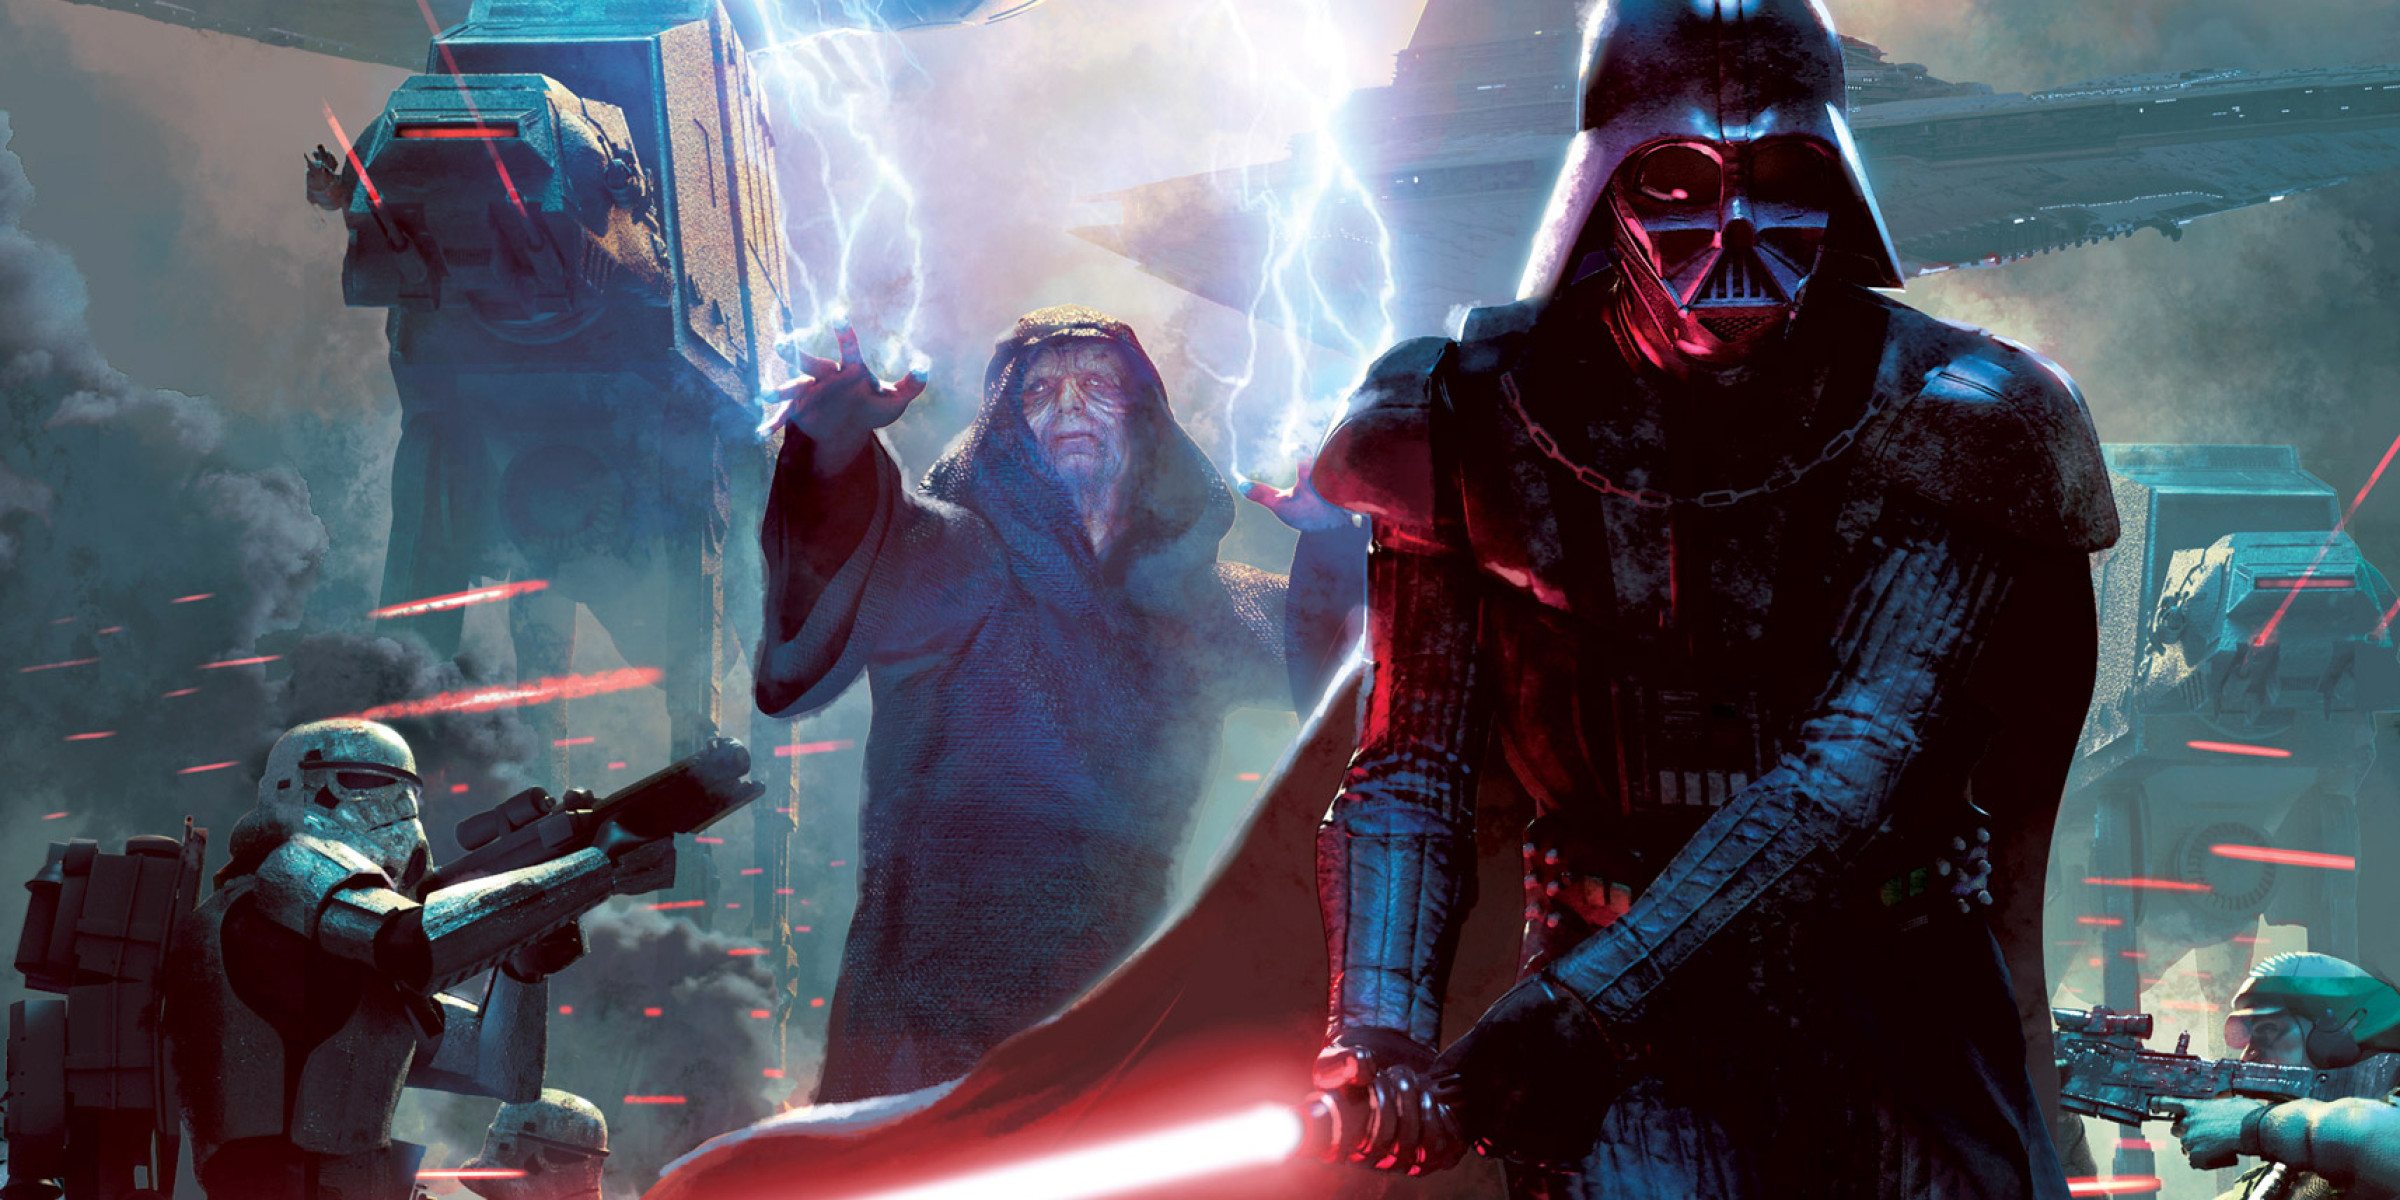 darth sidious and vader relationship